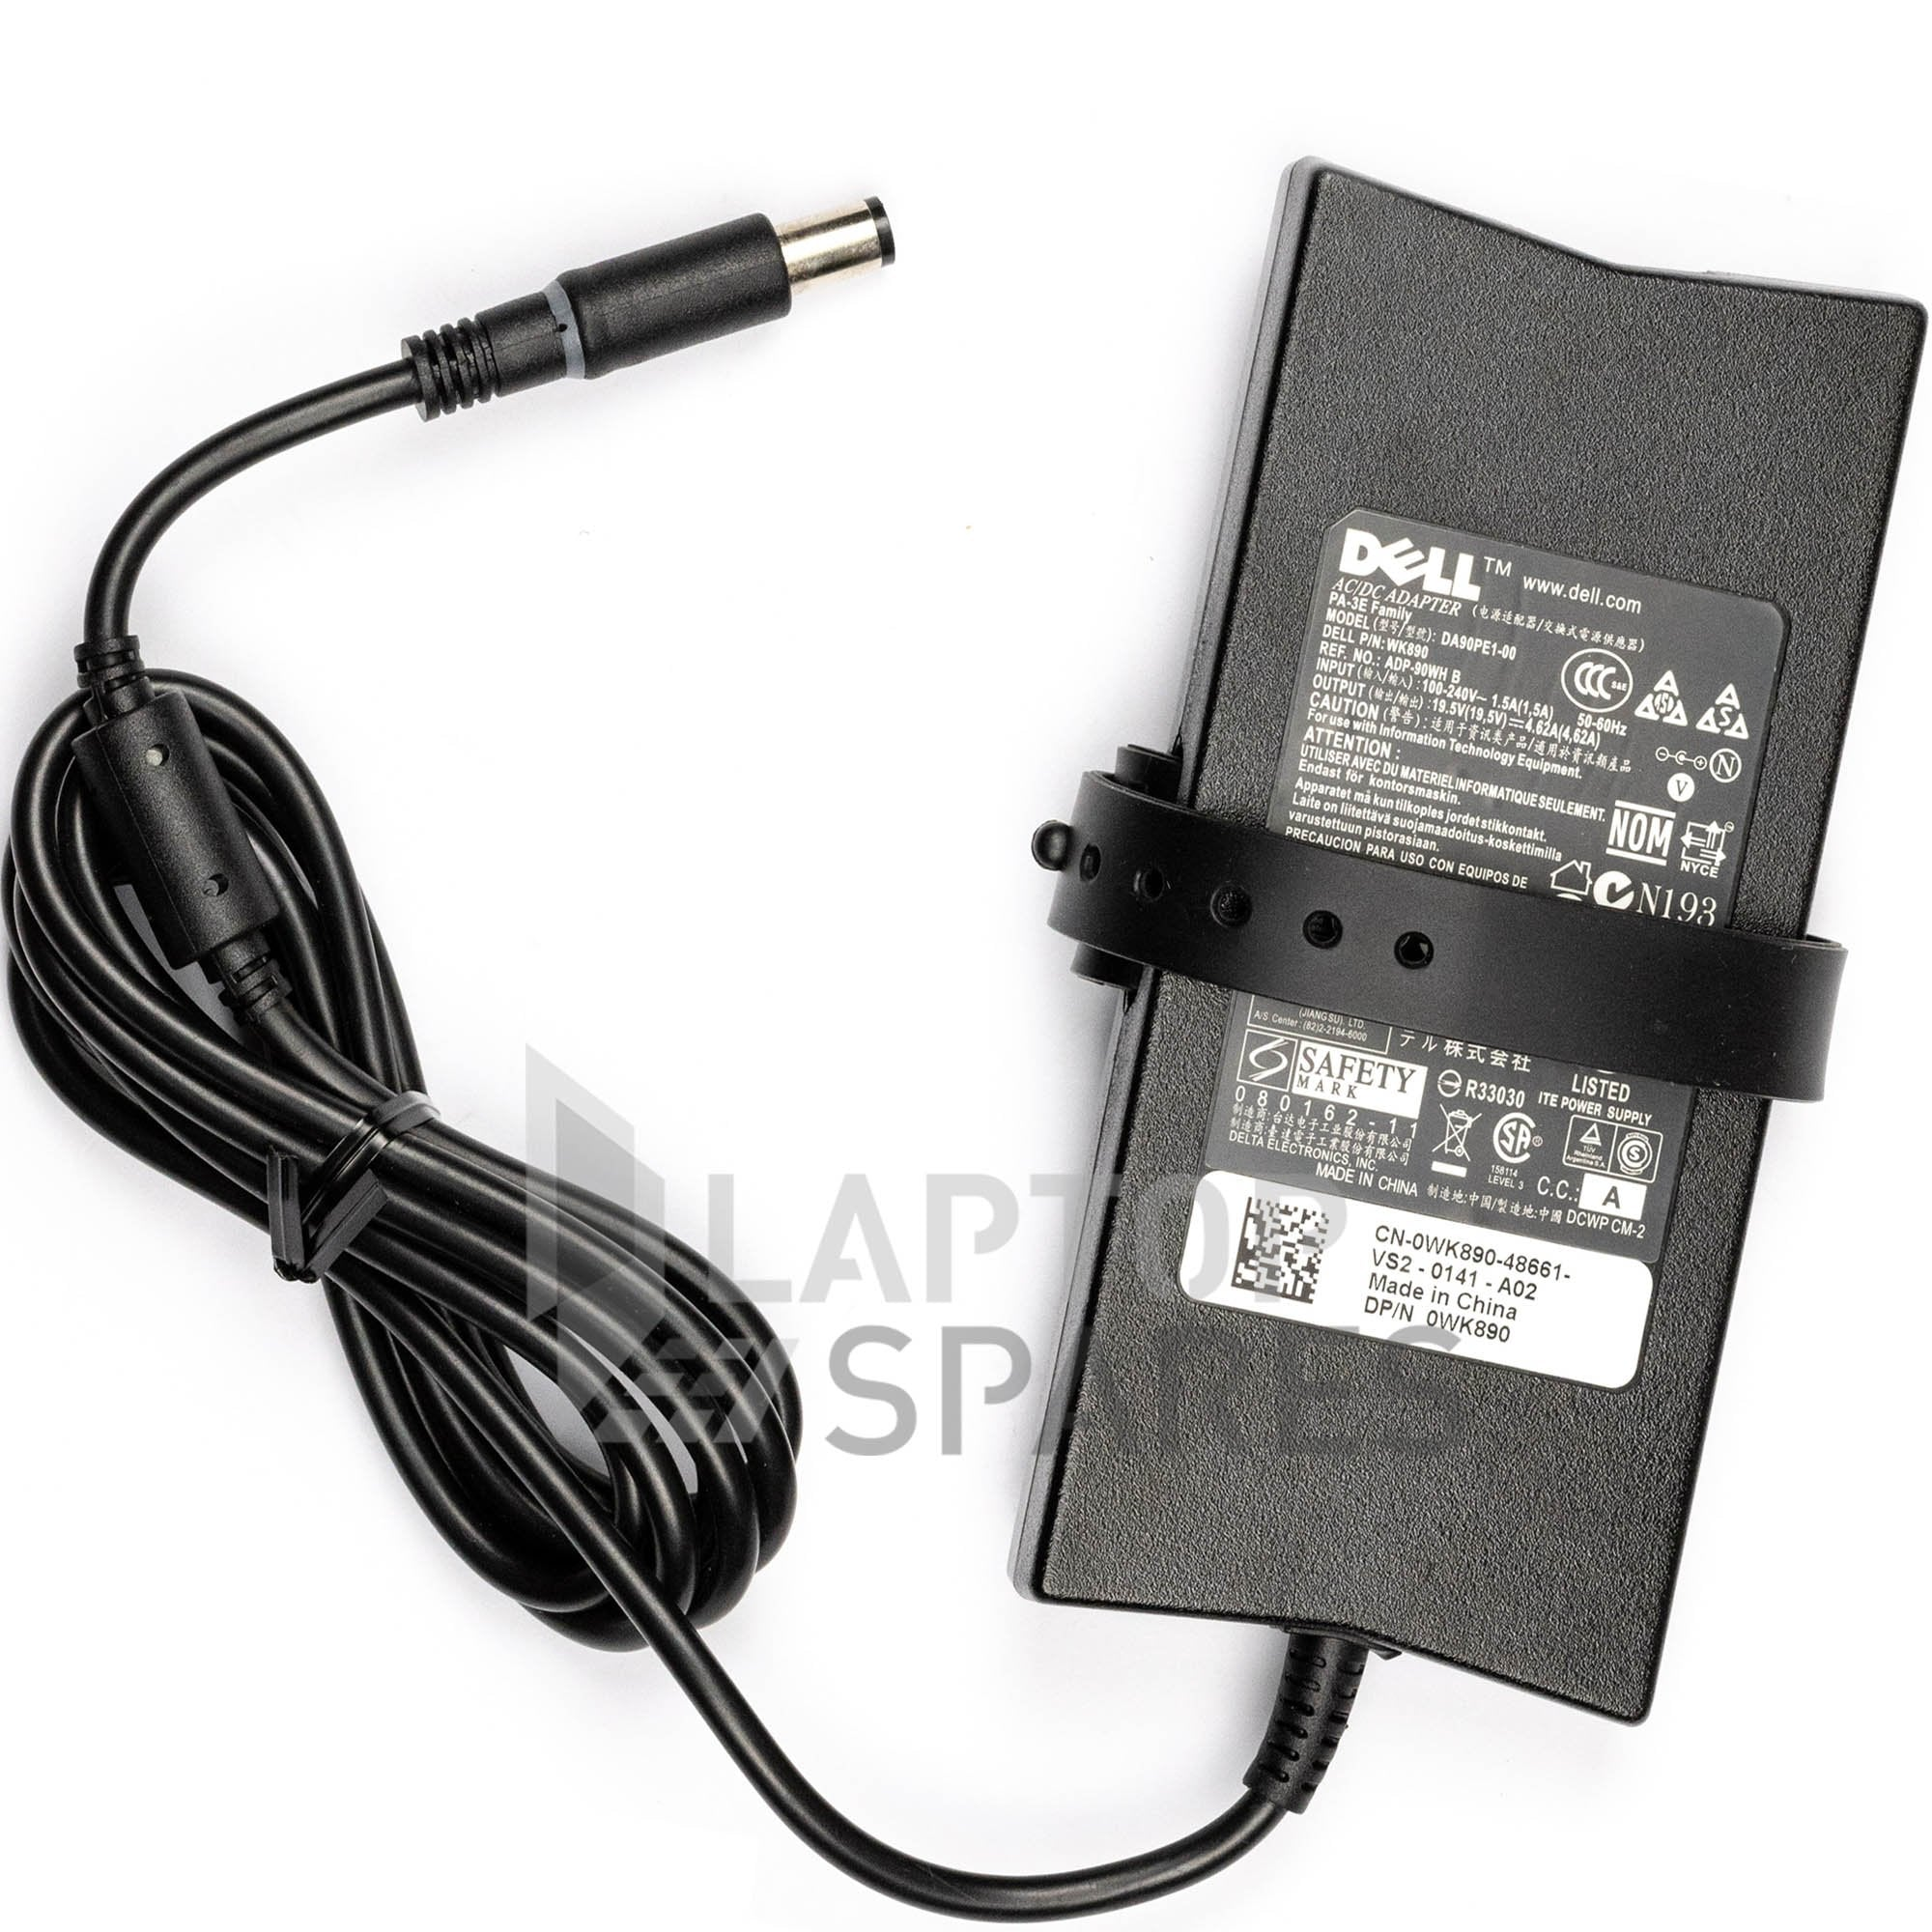 Dell Inspiron 14R N4010 Laptop Slim AC Adapter Charger